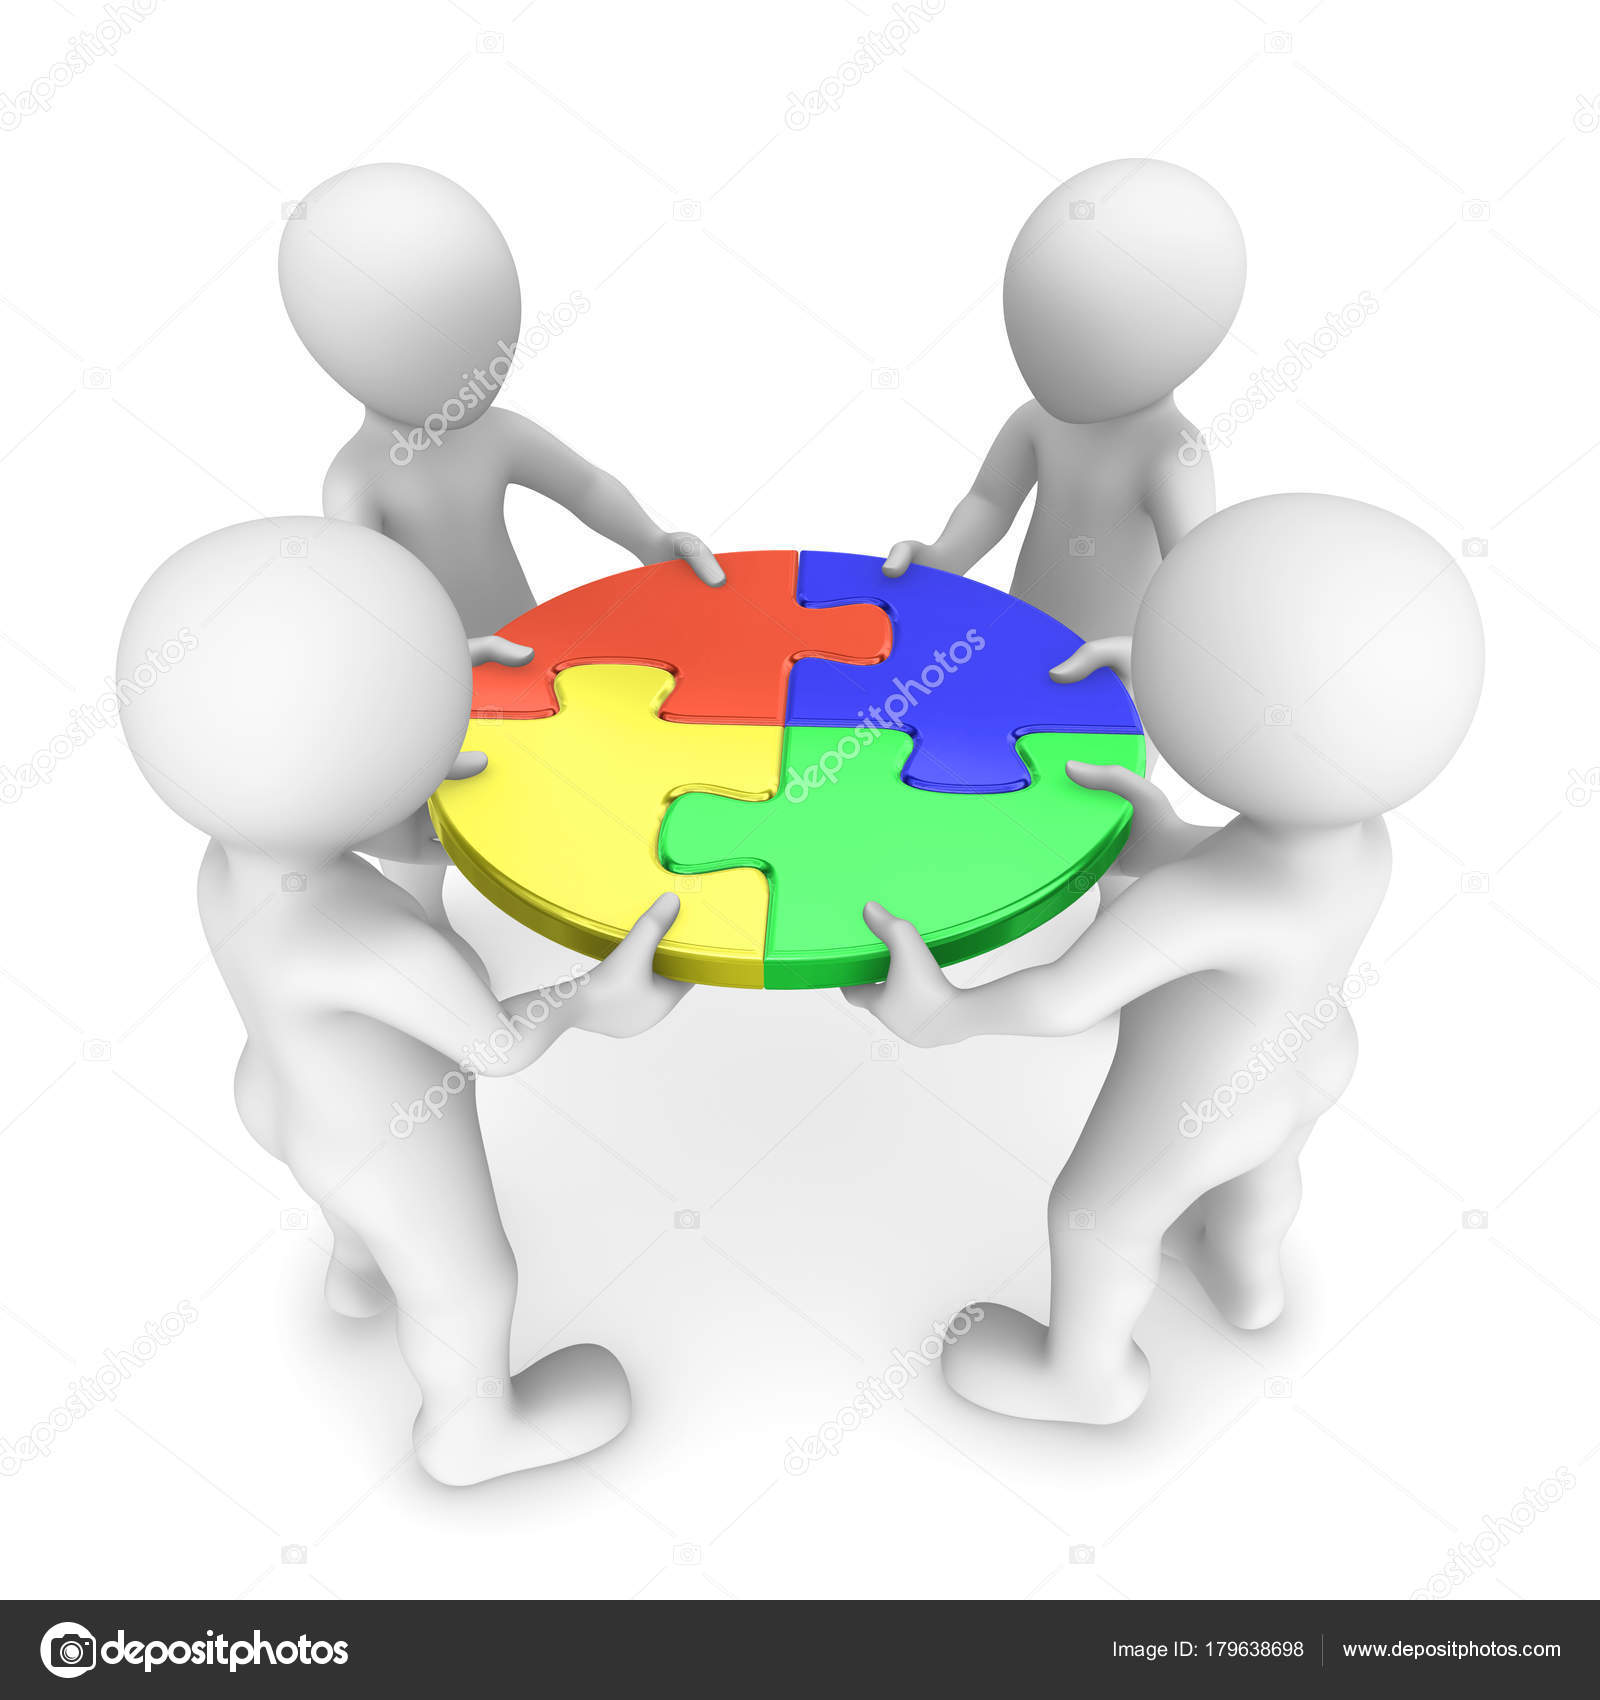 People Jigsaw Puzzle Teamwork Concept Rendered Illustration Stock